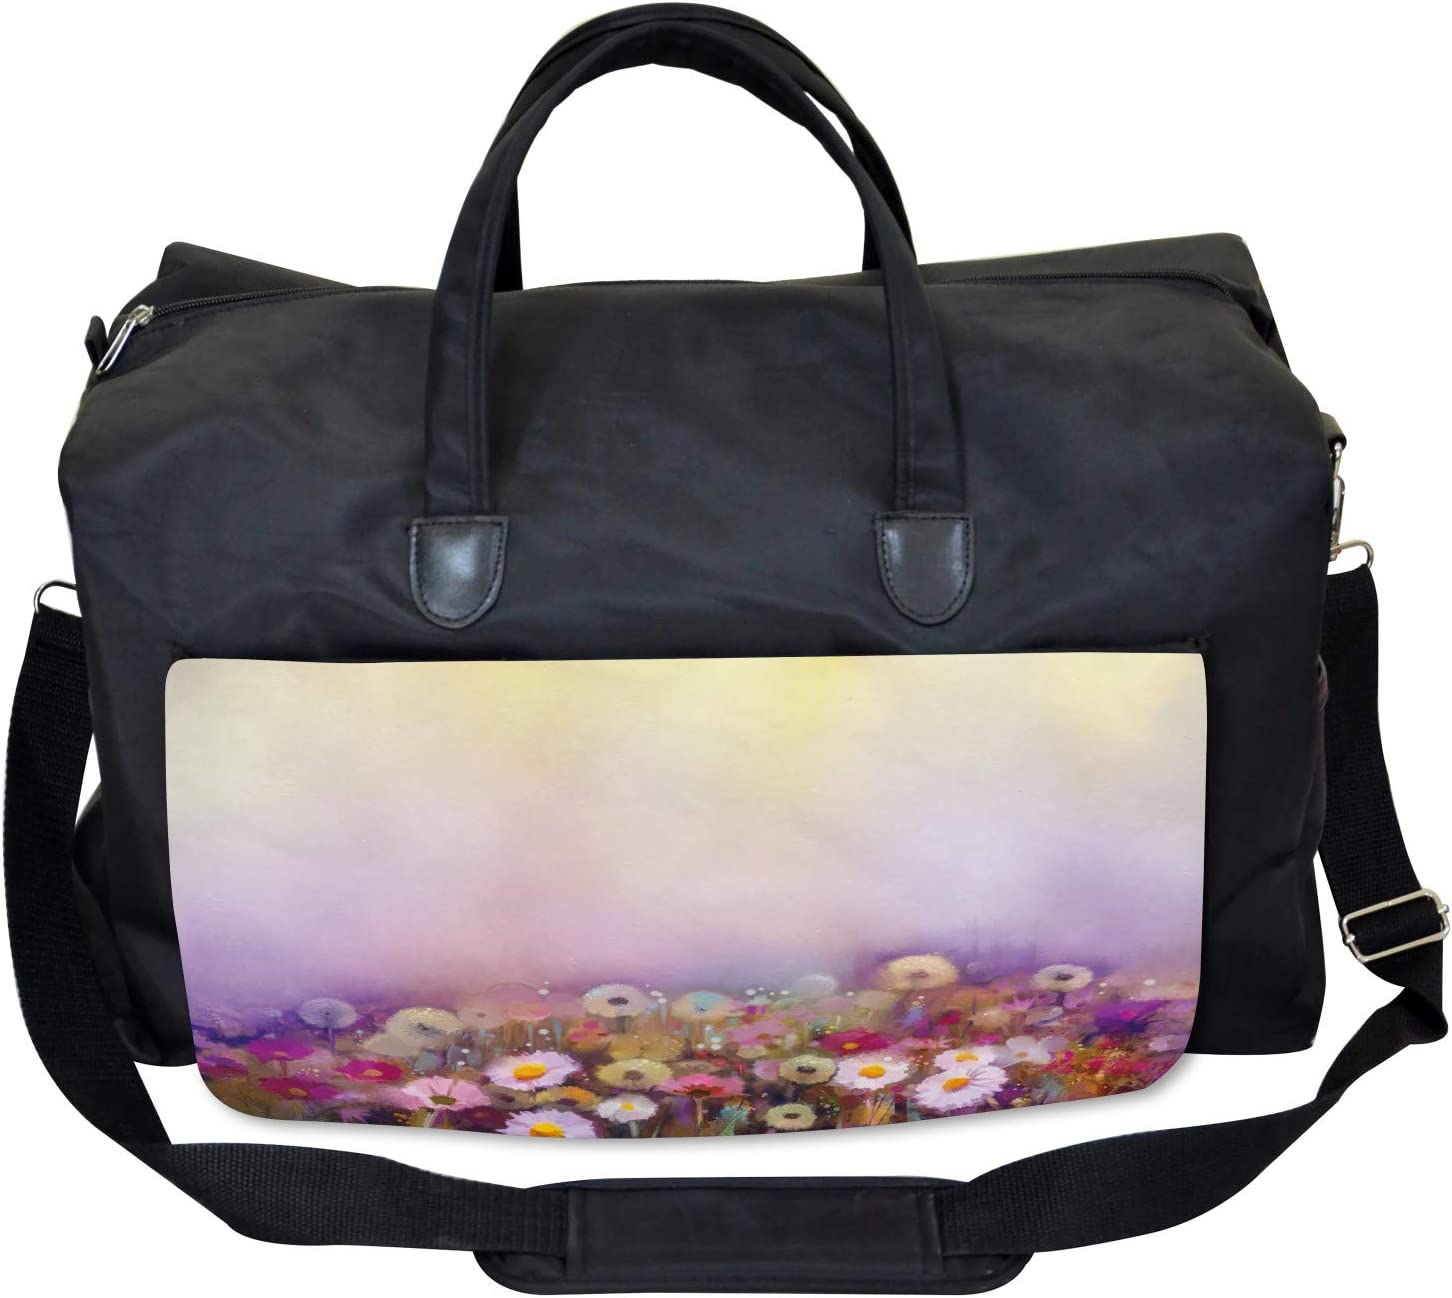 Ambesonne Floral Gym Bag Different Blossom Types Large Weekender Carry-on